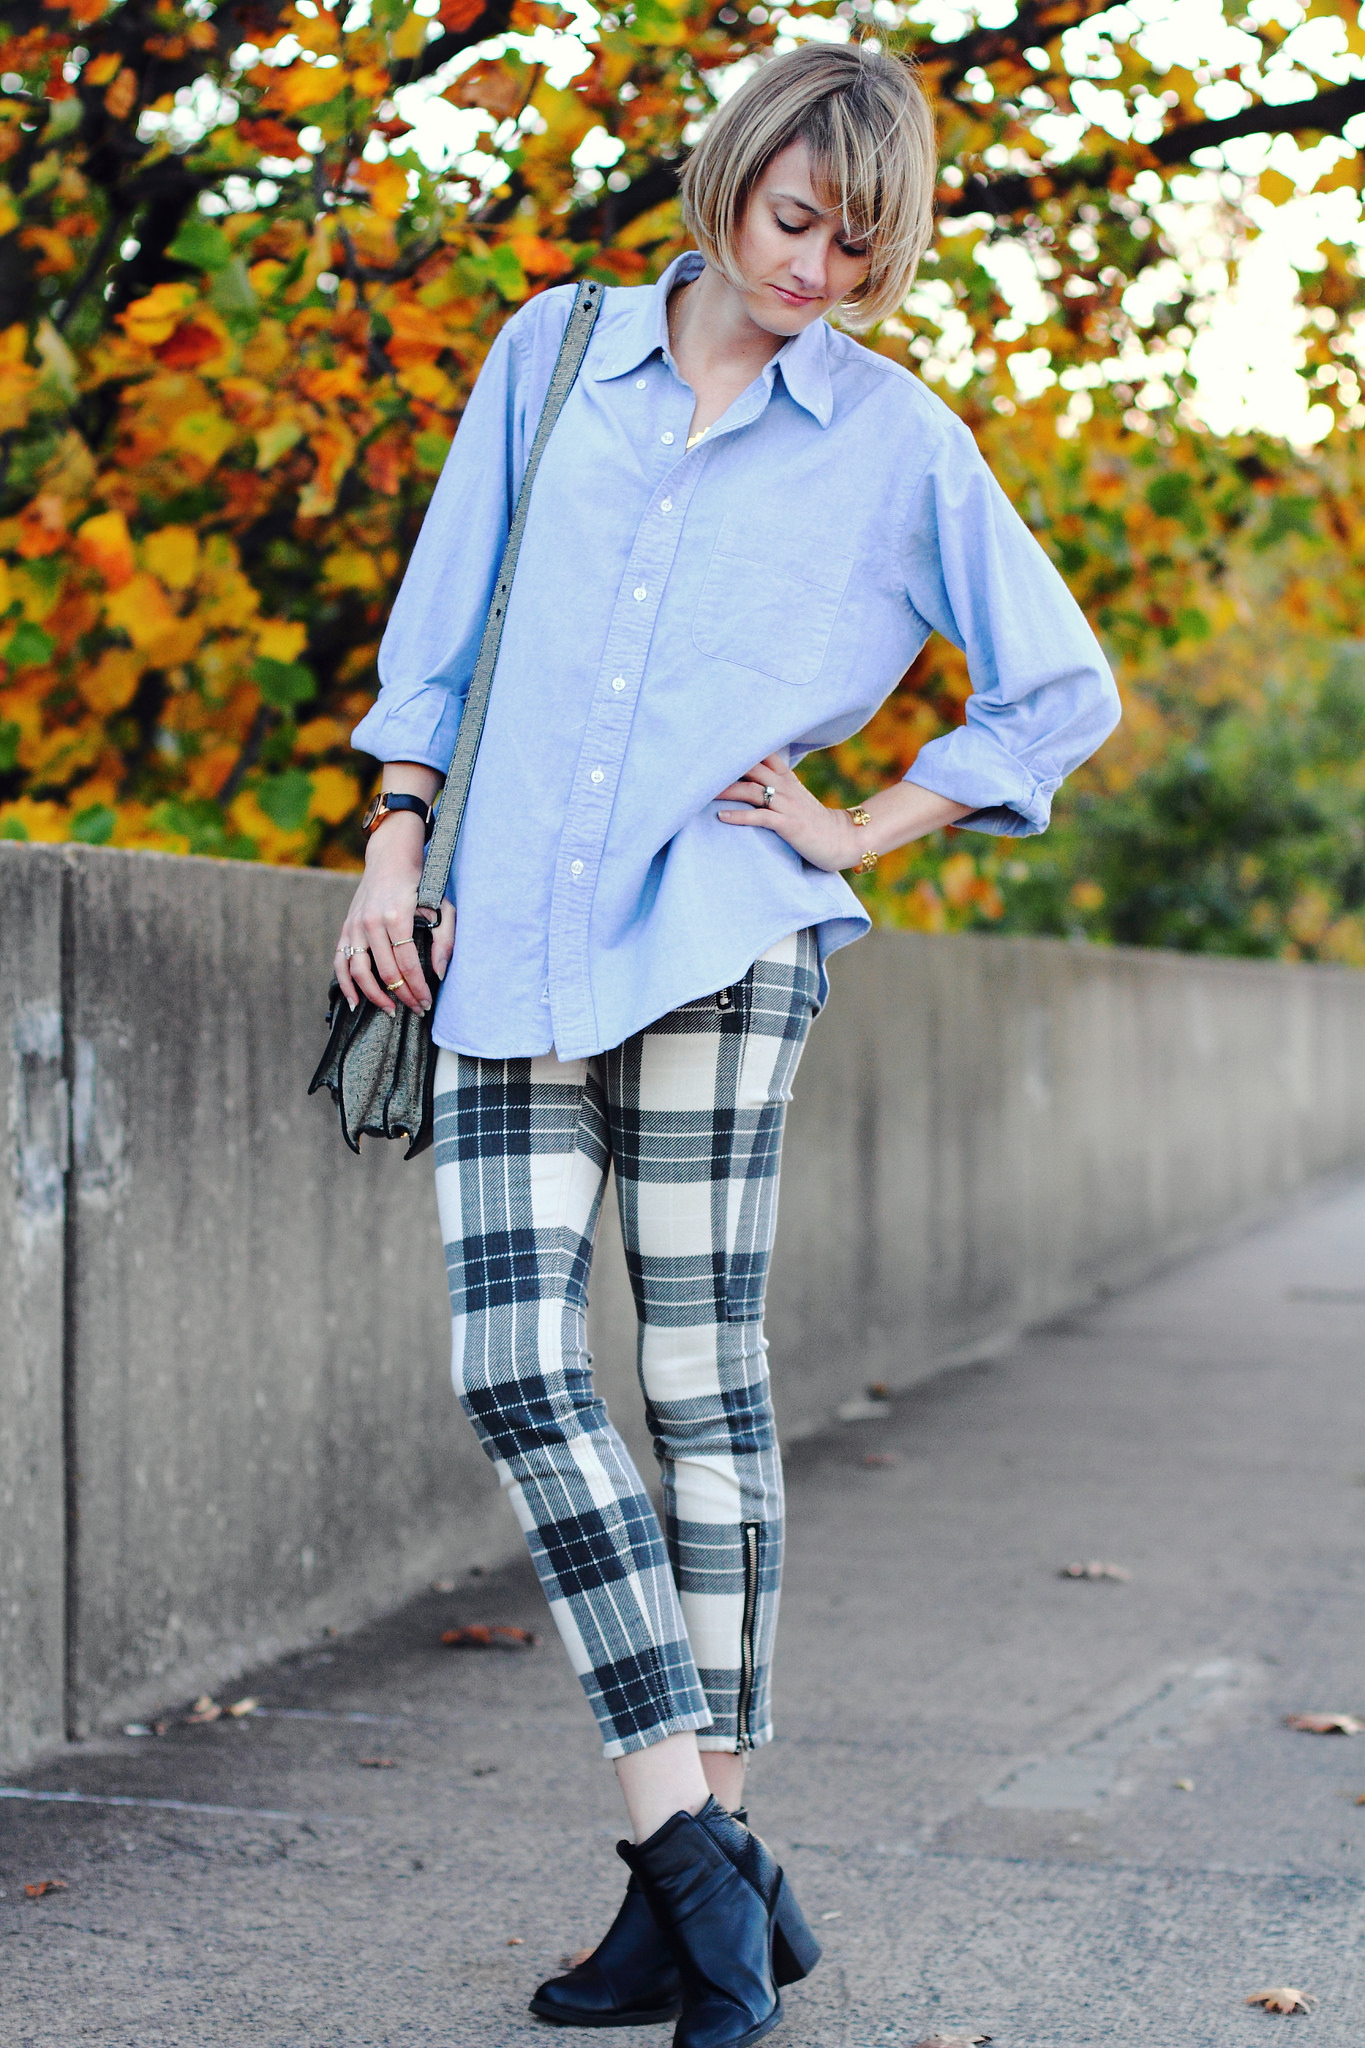 men's shirt and plaid Mother jeans